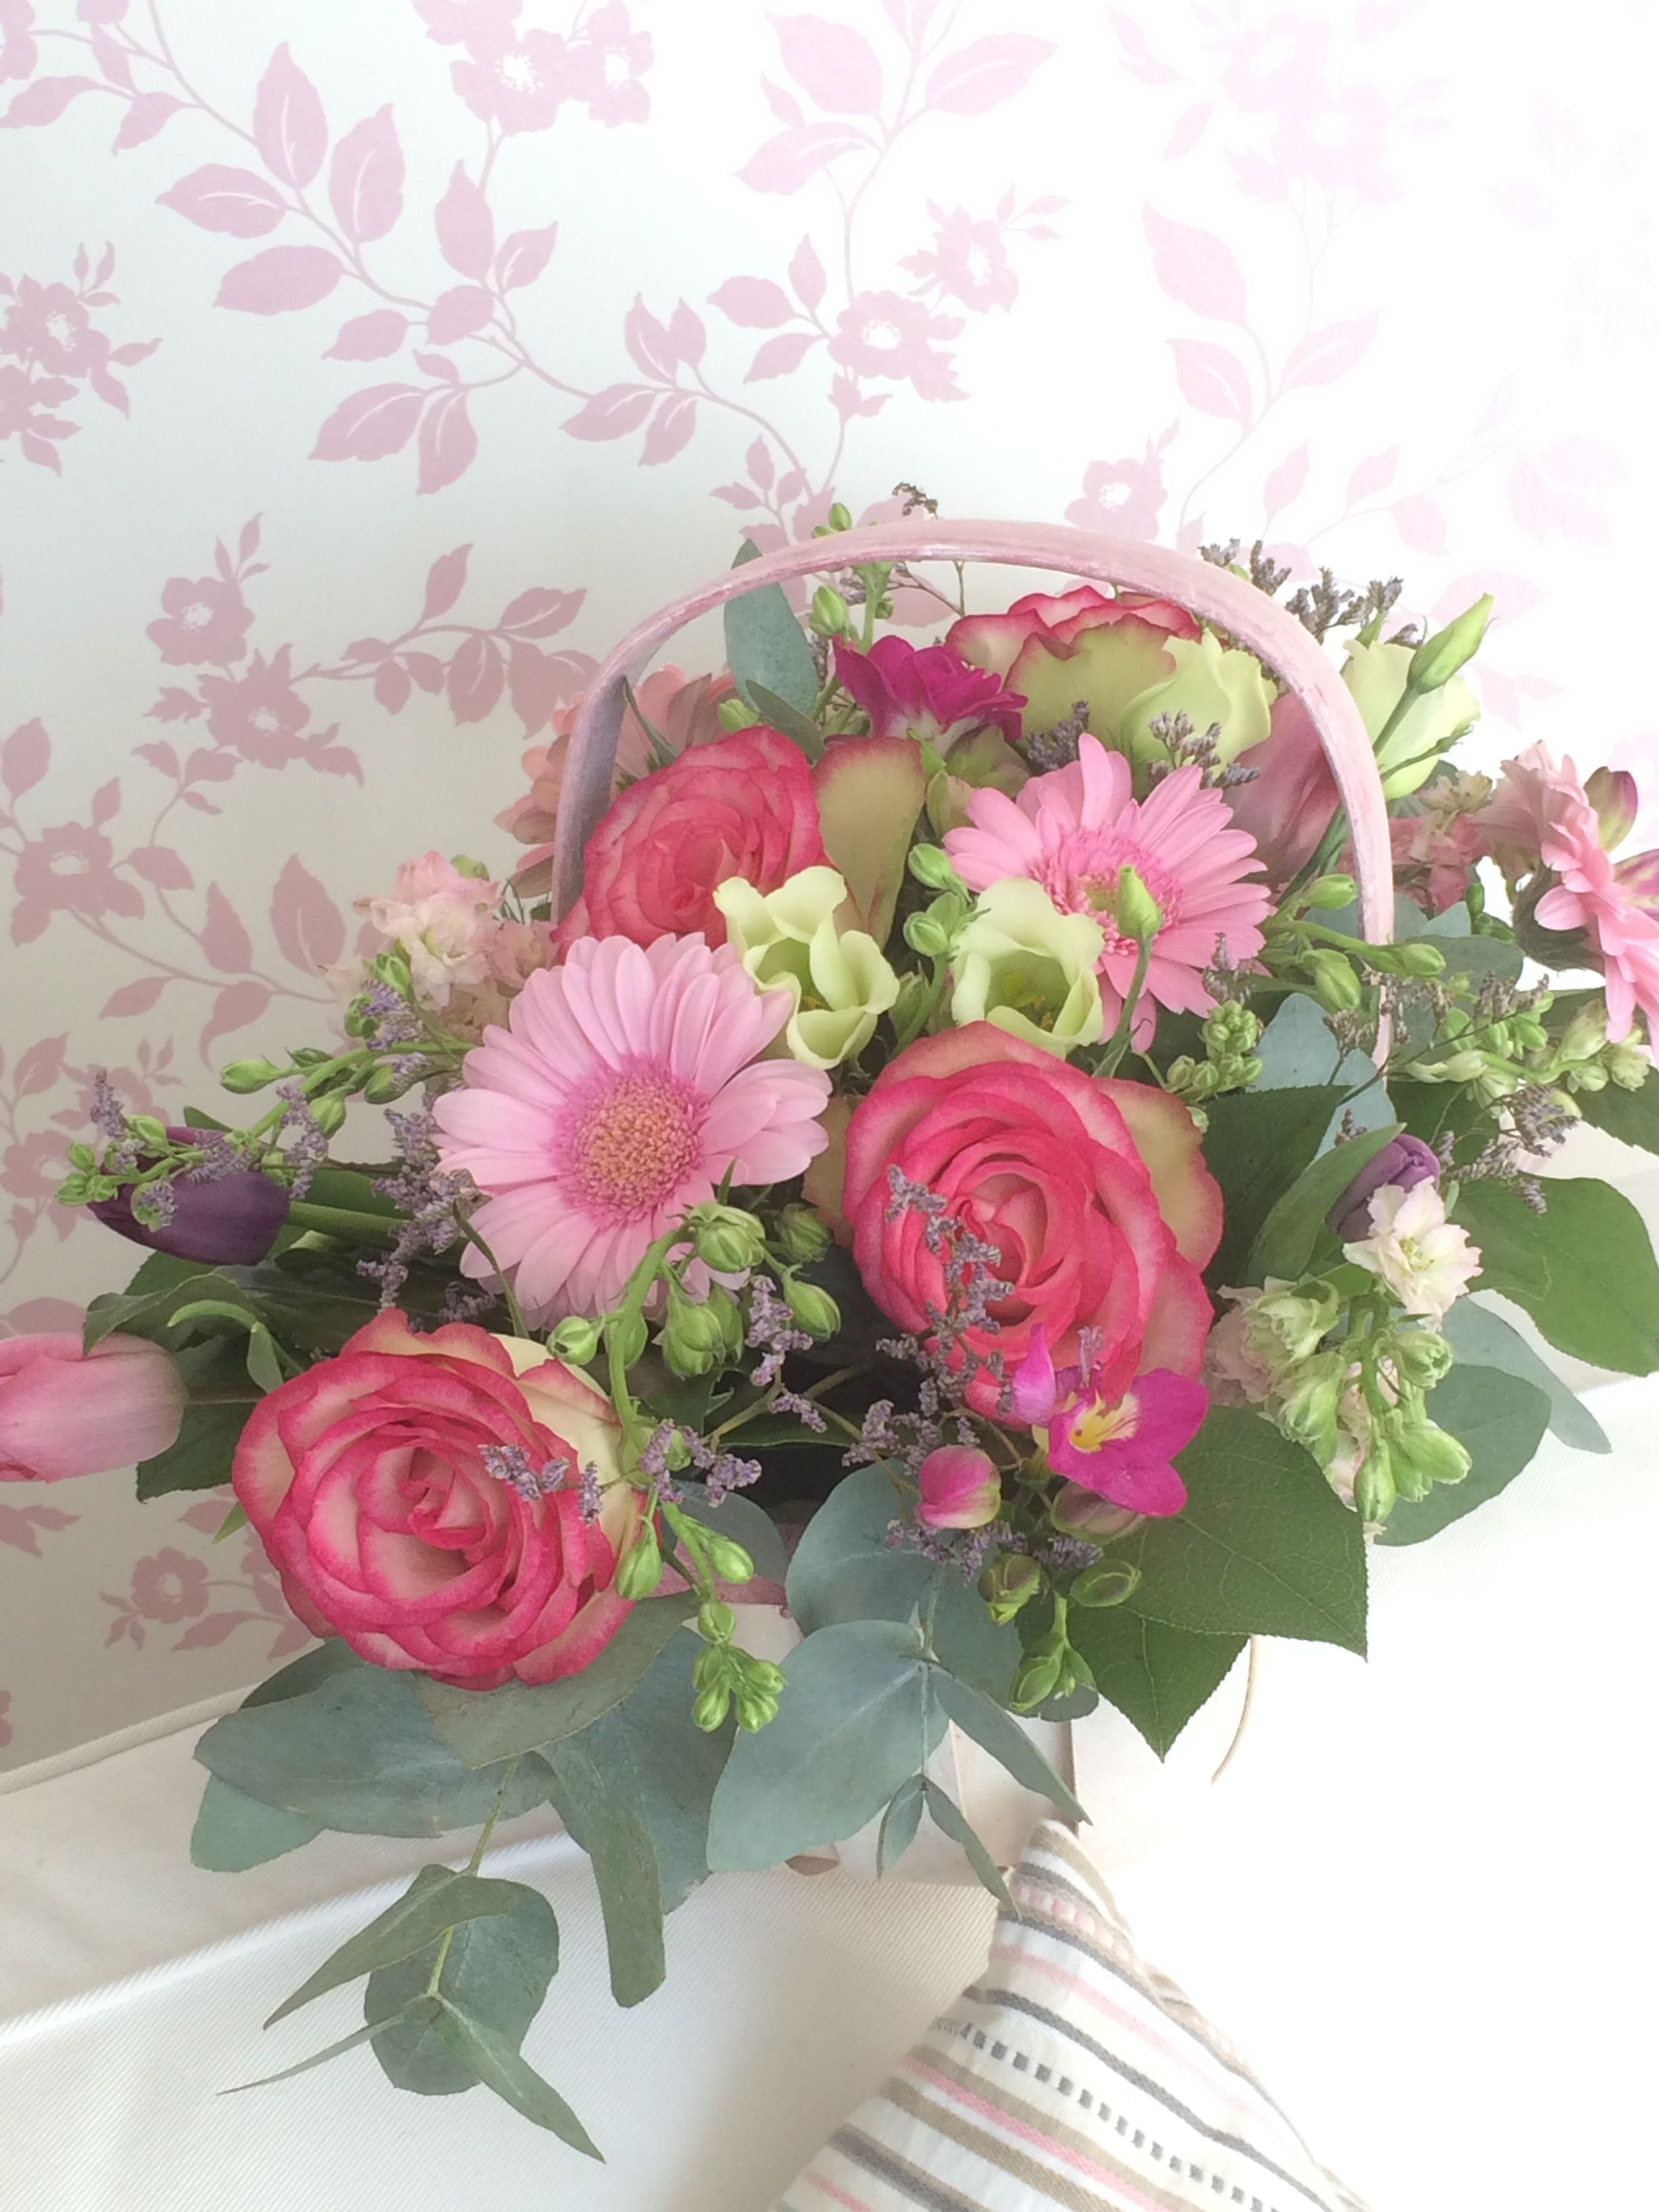 Beautiful Spring Fresh Basket Of Pink Roses And Seasonal Flowers For